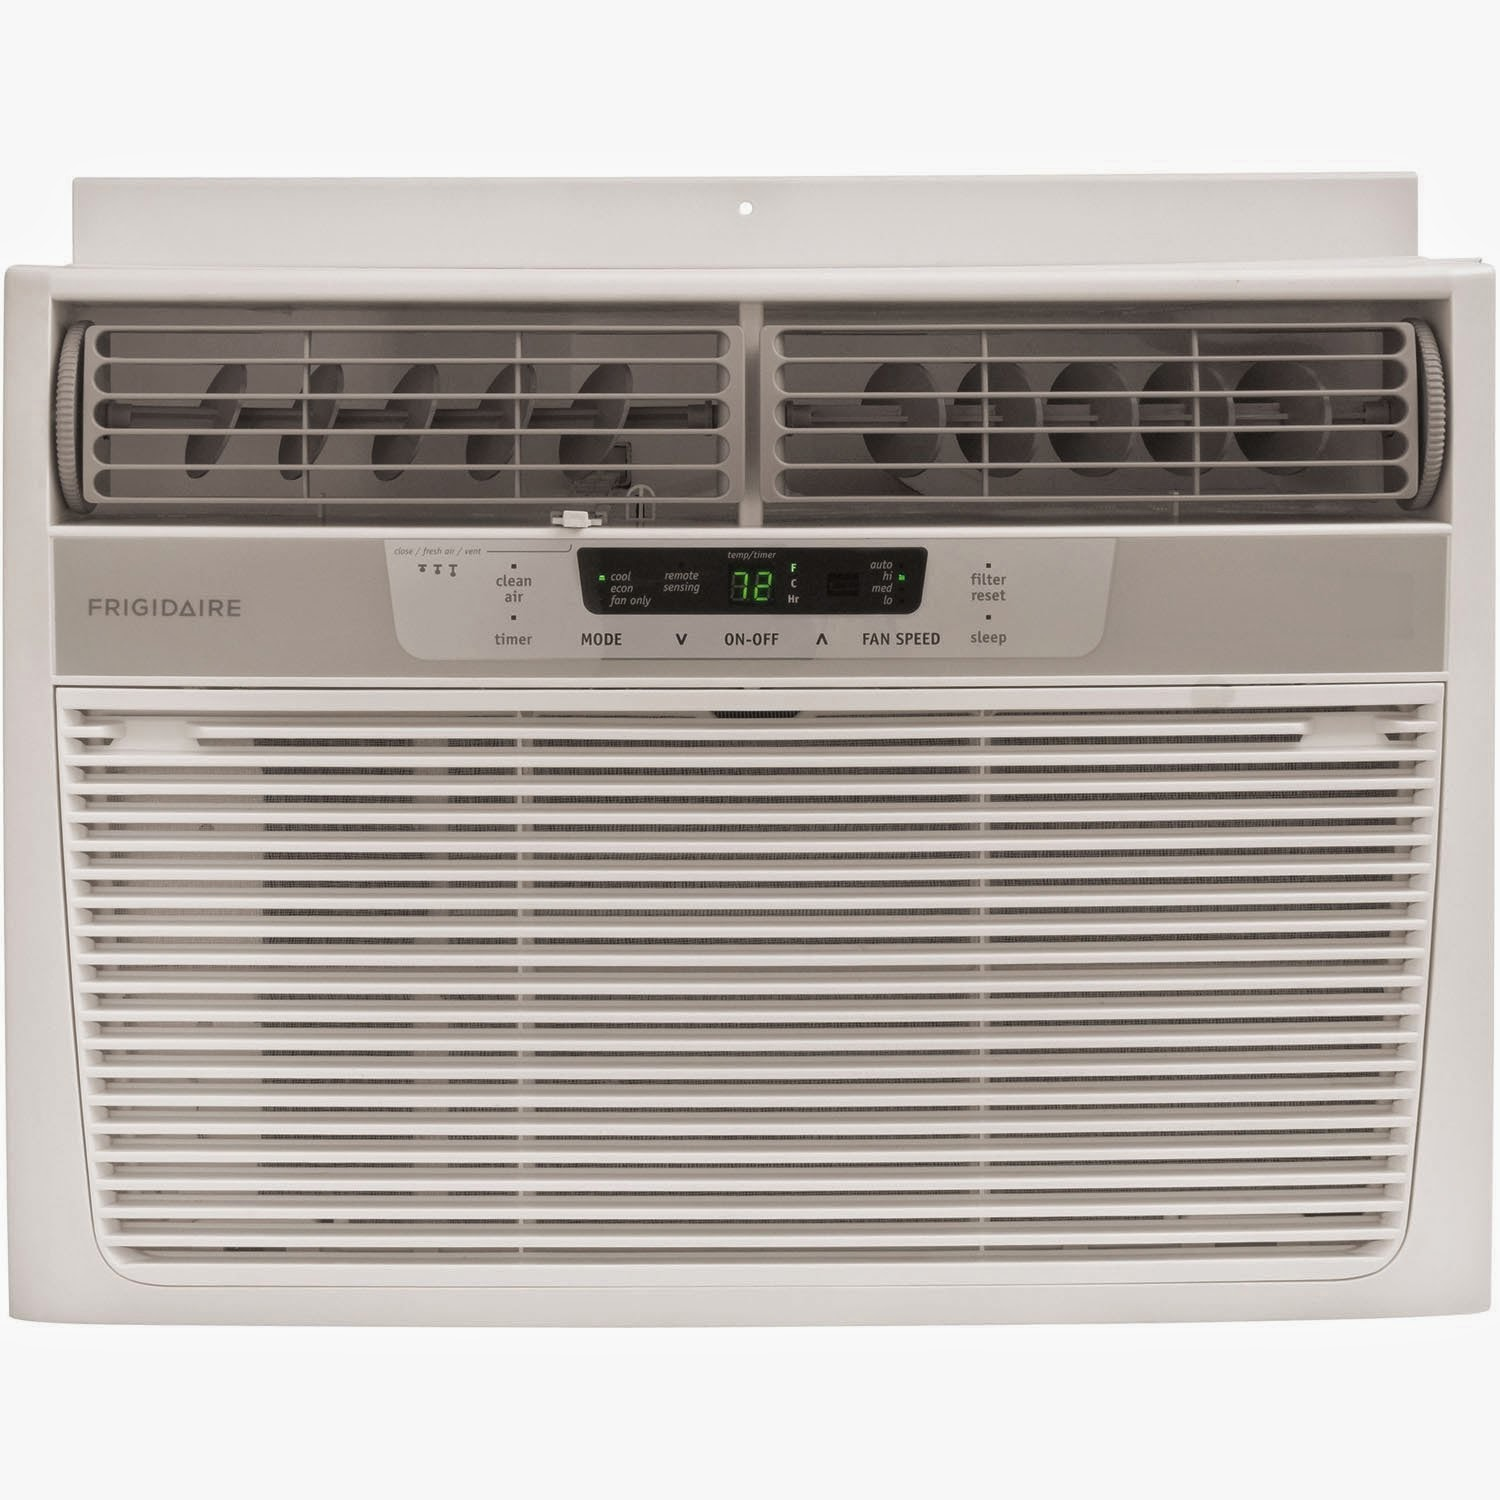 Frigidaire FRA106CV1 10,000 BTU 115-Volt Window-Mounted Compact Air Conditioner with Temperature Sensing Remote Control